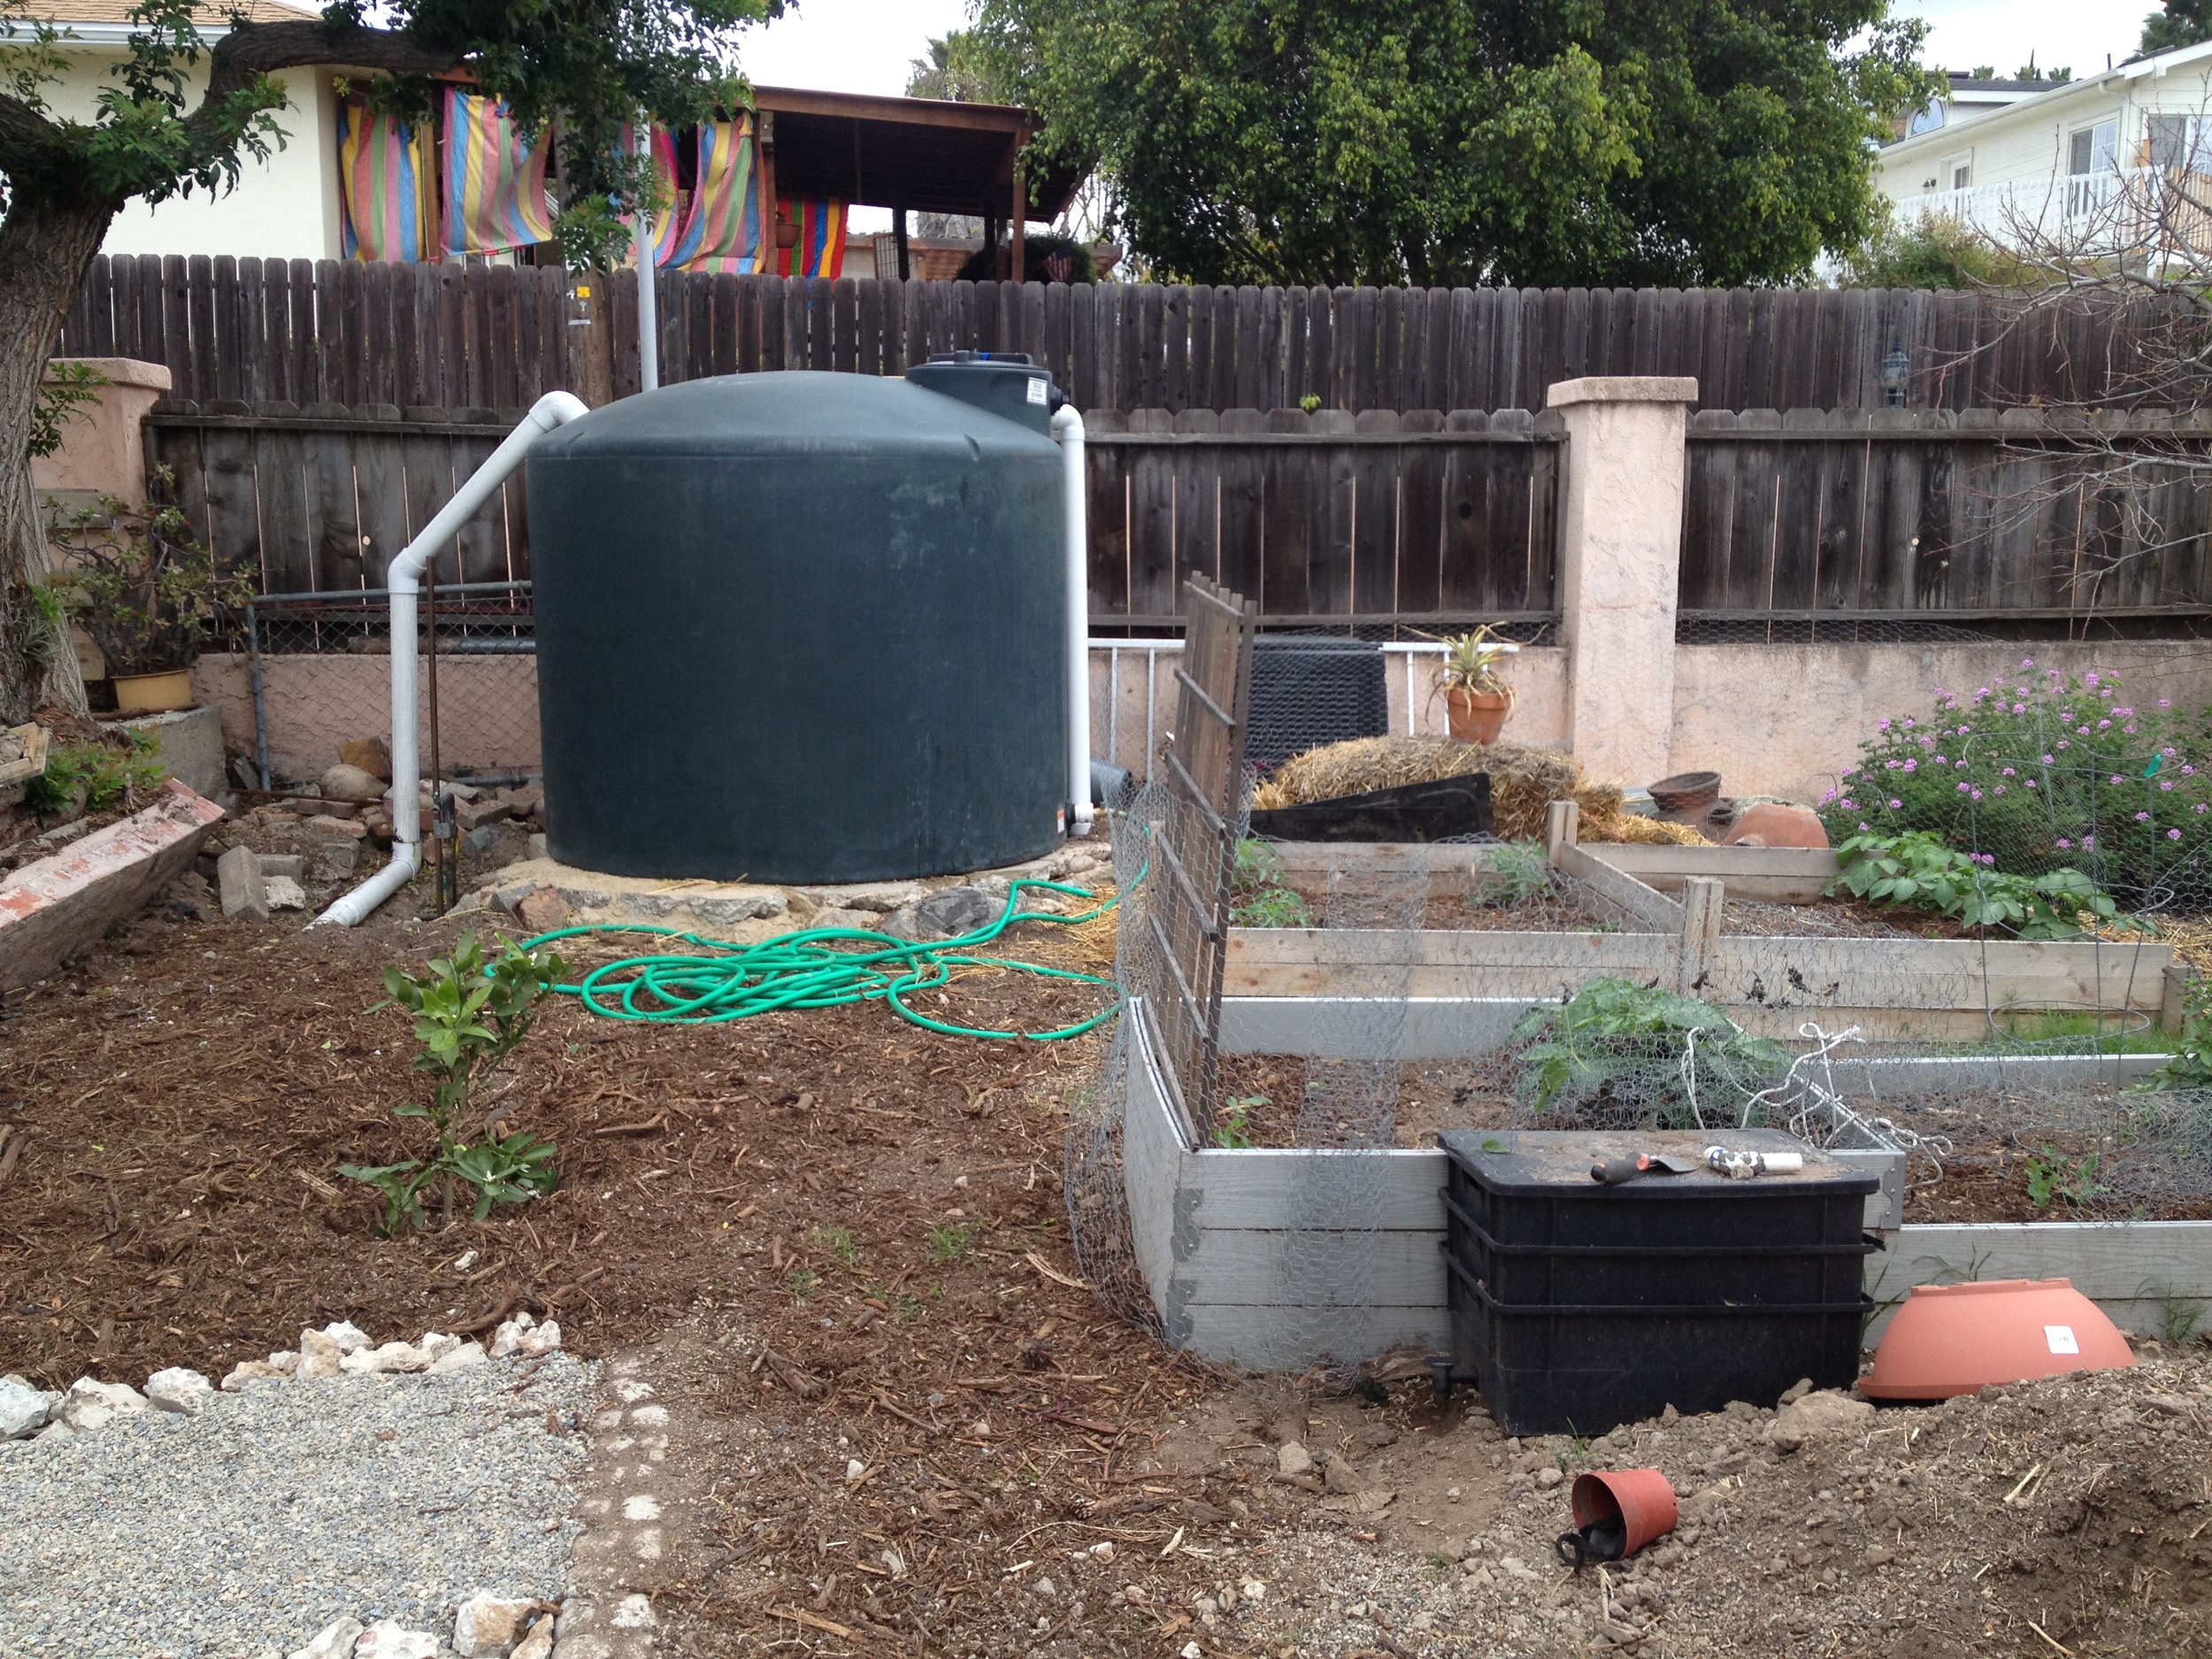 This tank collects rainwater from pipes that drain from the roof, go underground and come back up into the tank, without a pump.  That doesn't necessarily seem intuitive, but it works!